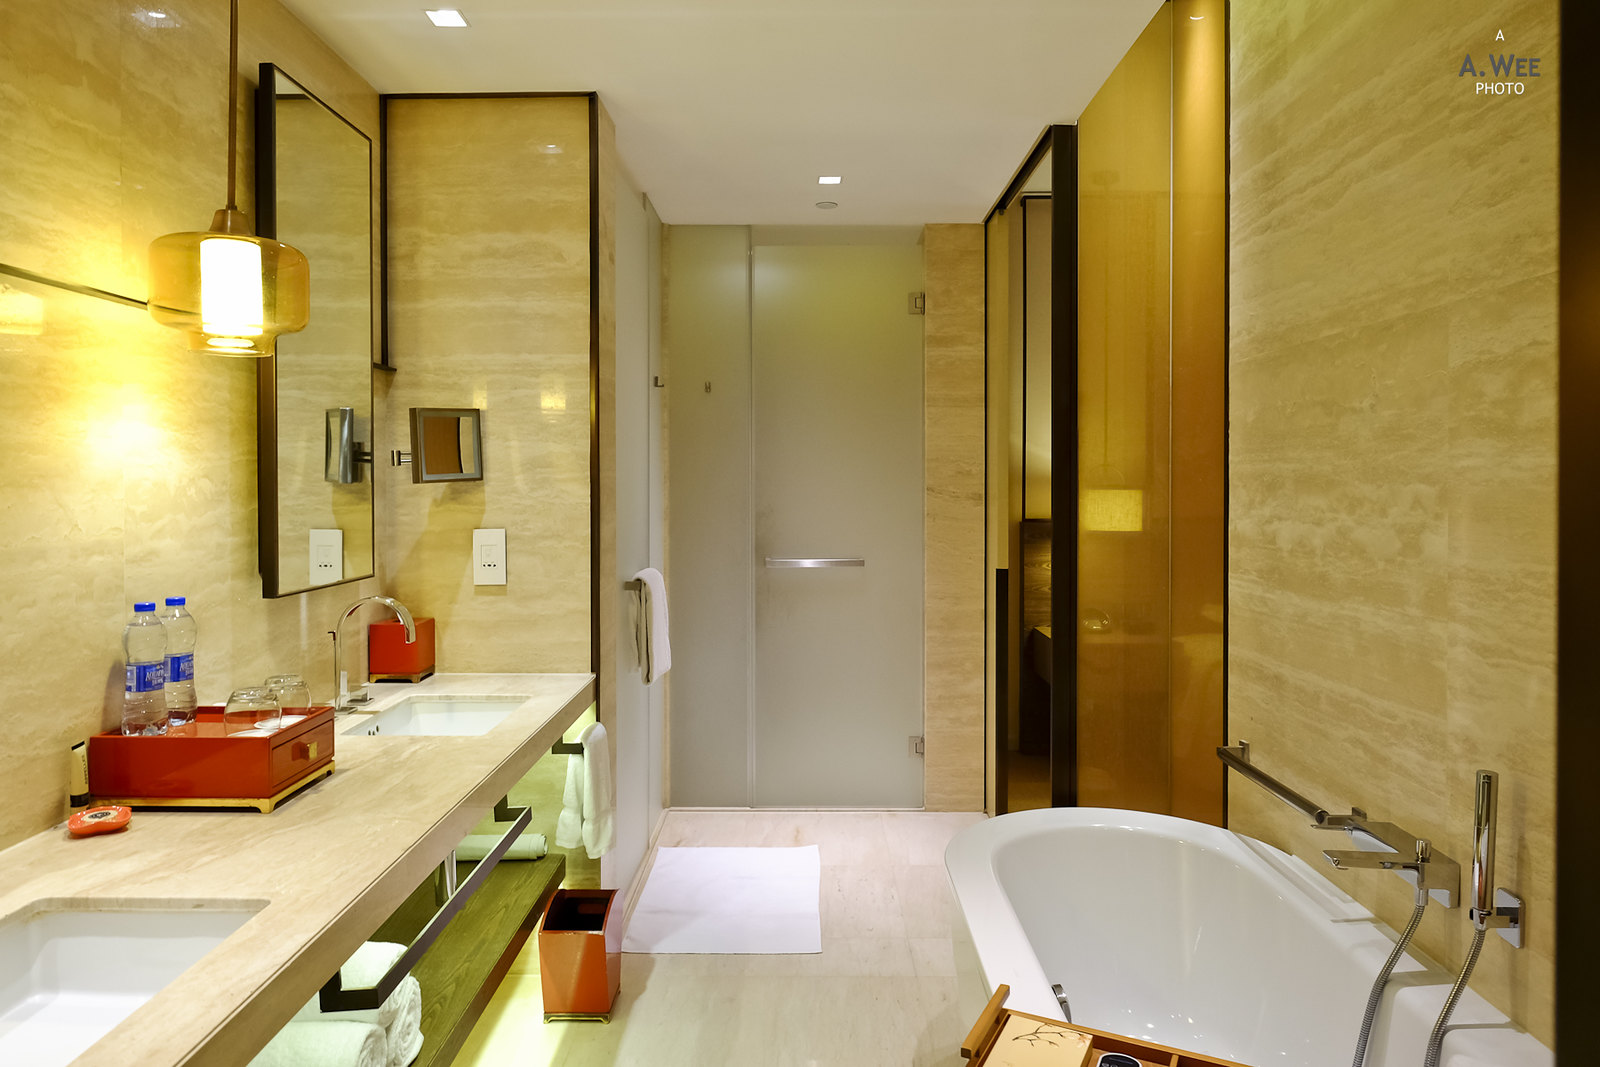 Bathtub and vanity